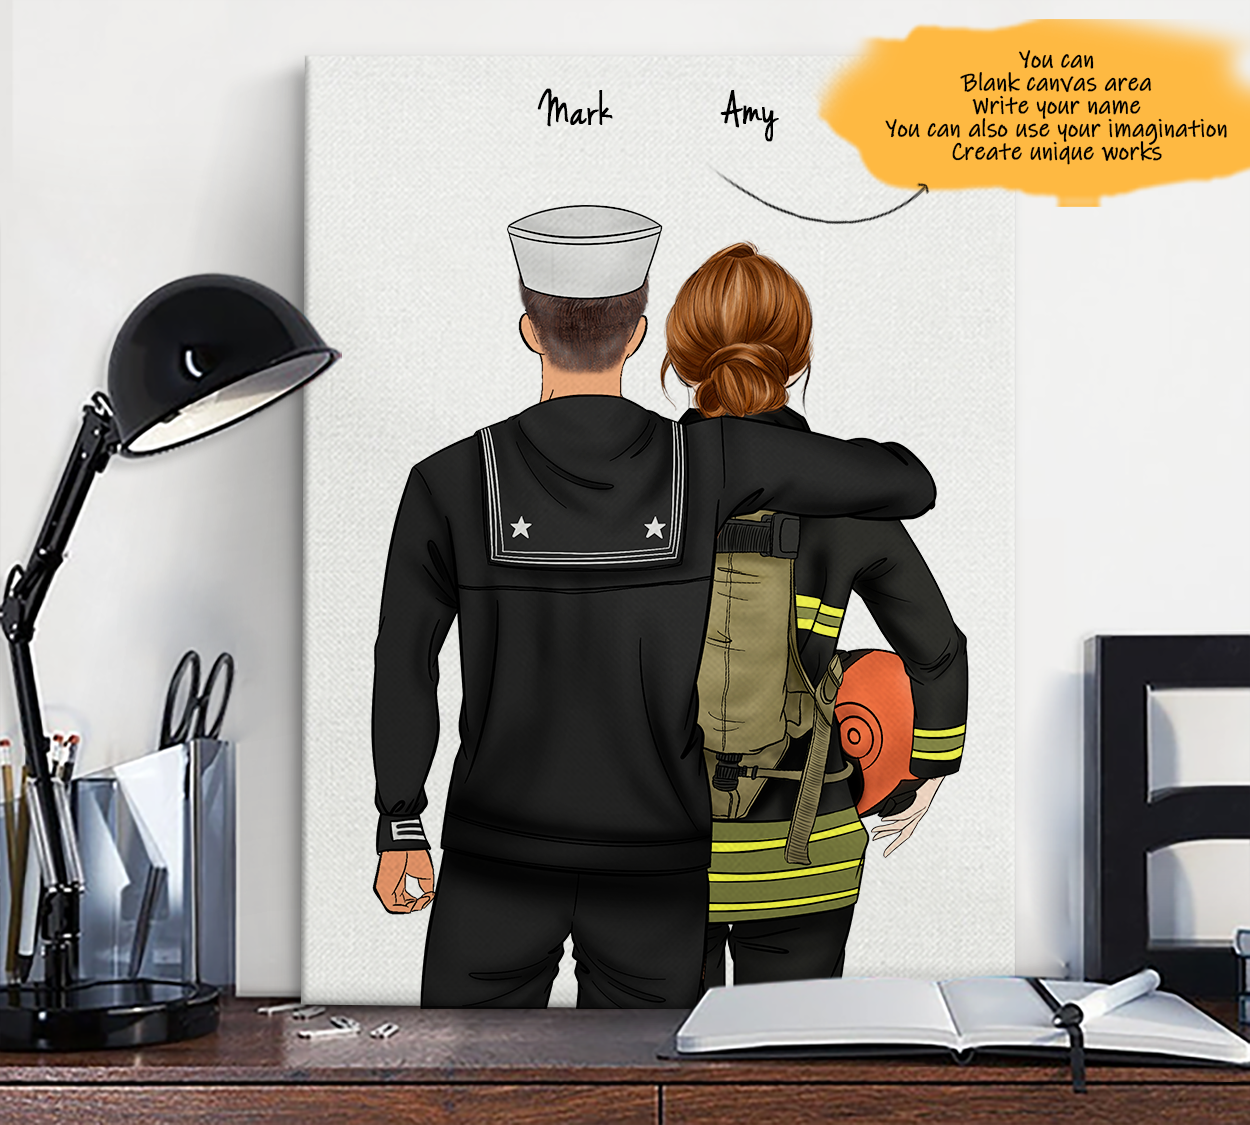 He is My Friend! Hand Draw Custom Canvas-Print Gift NavyUS-Tan&Firefighter